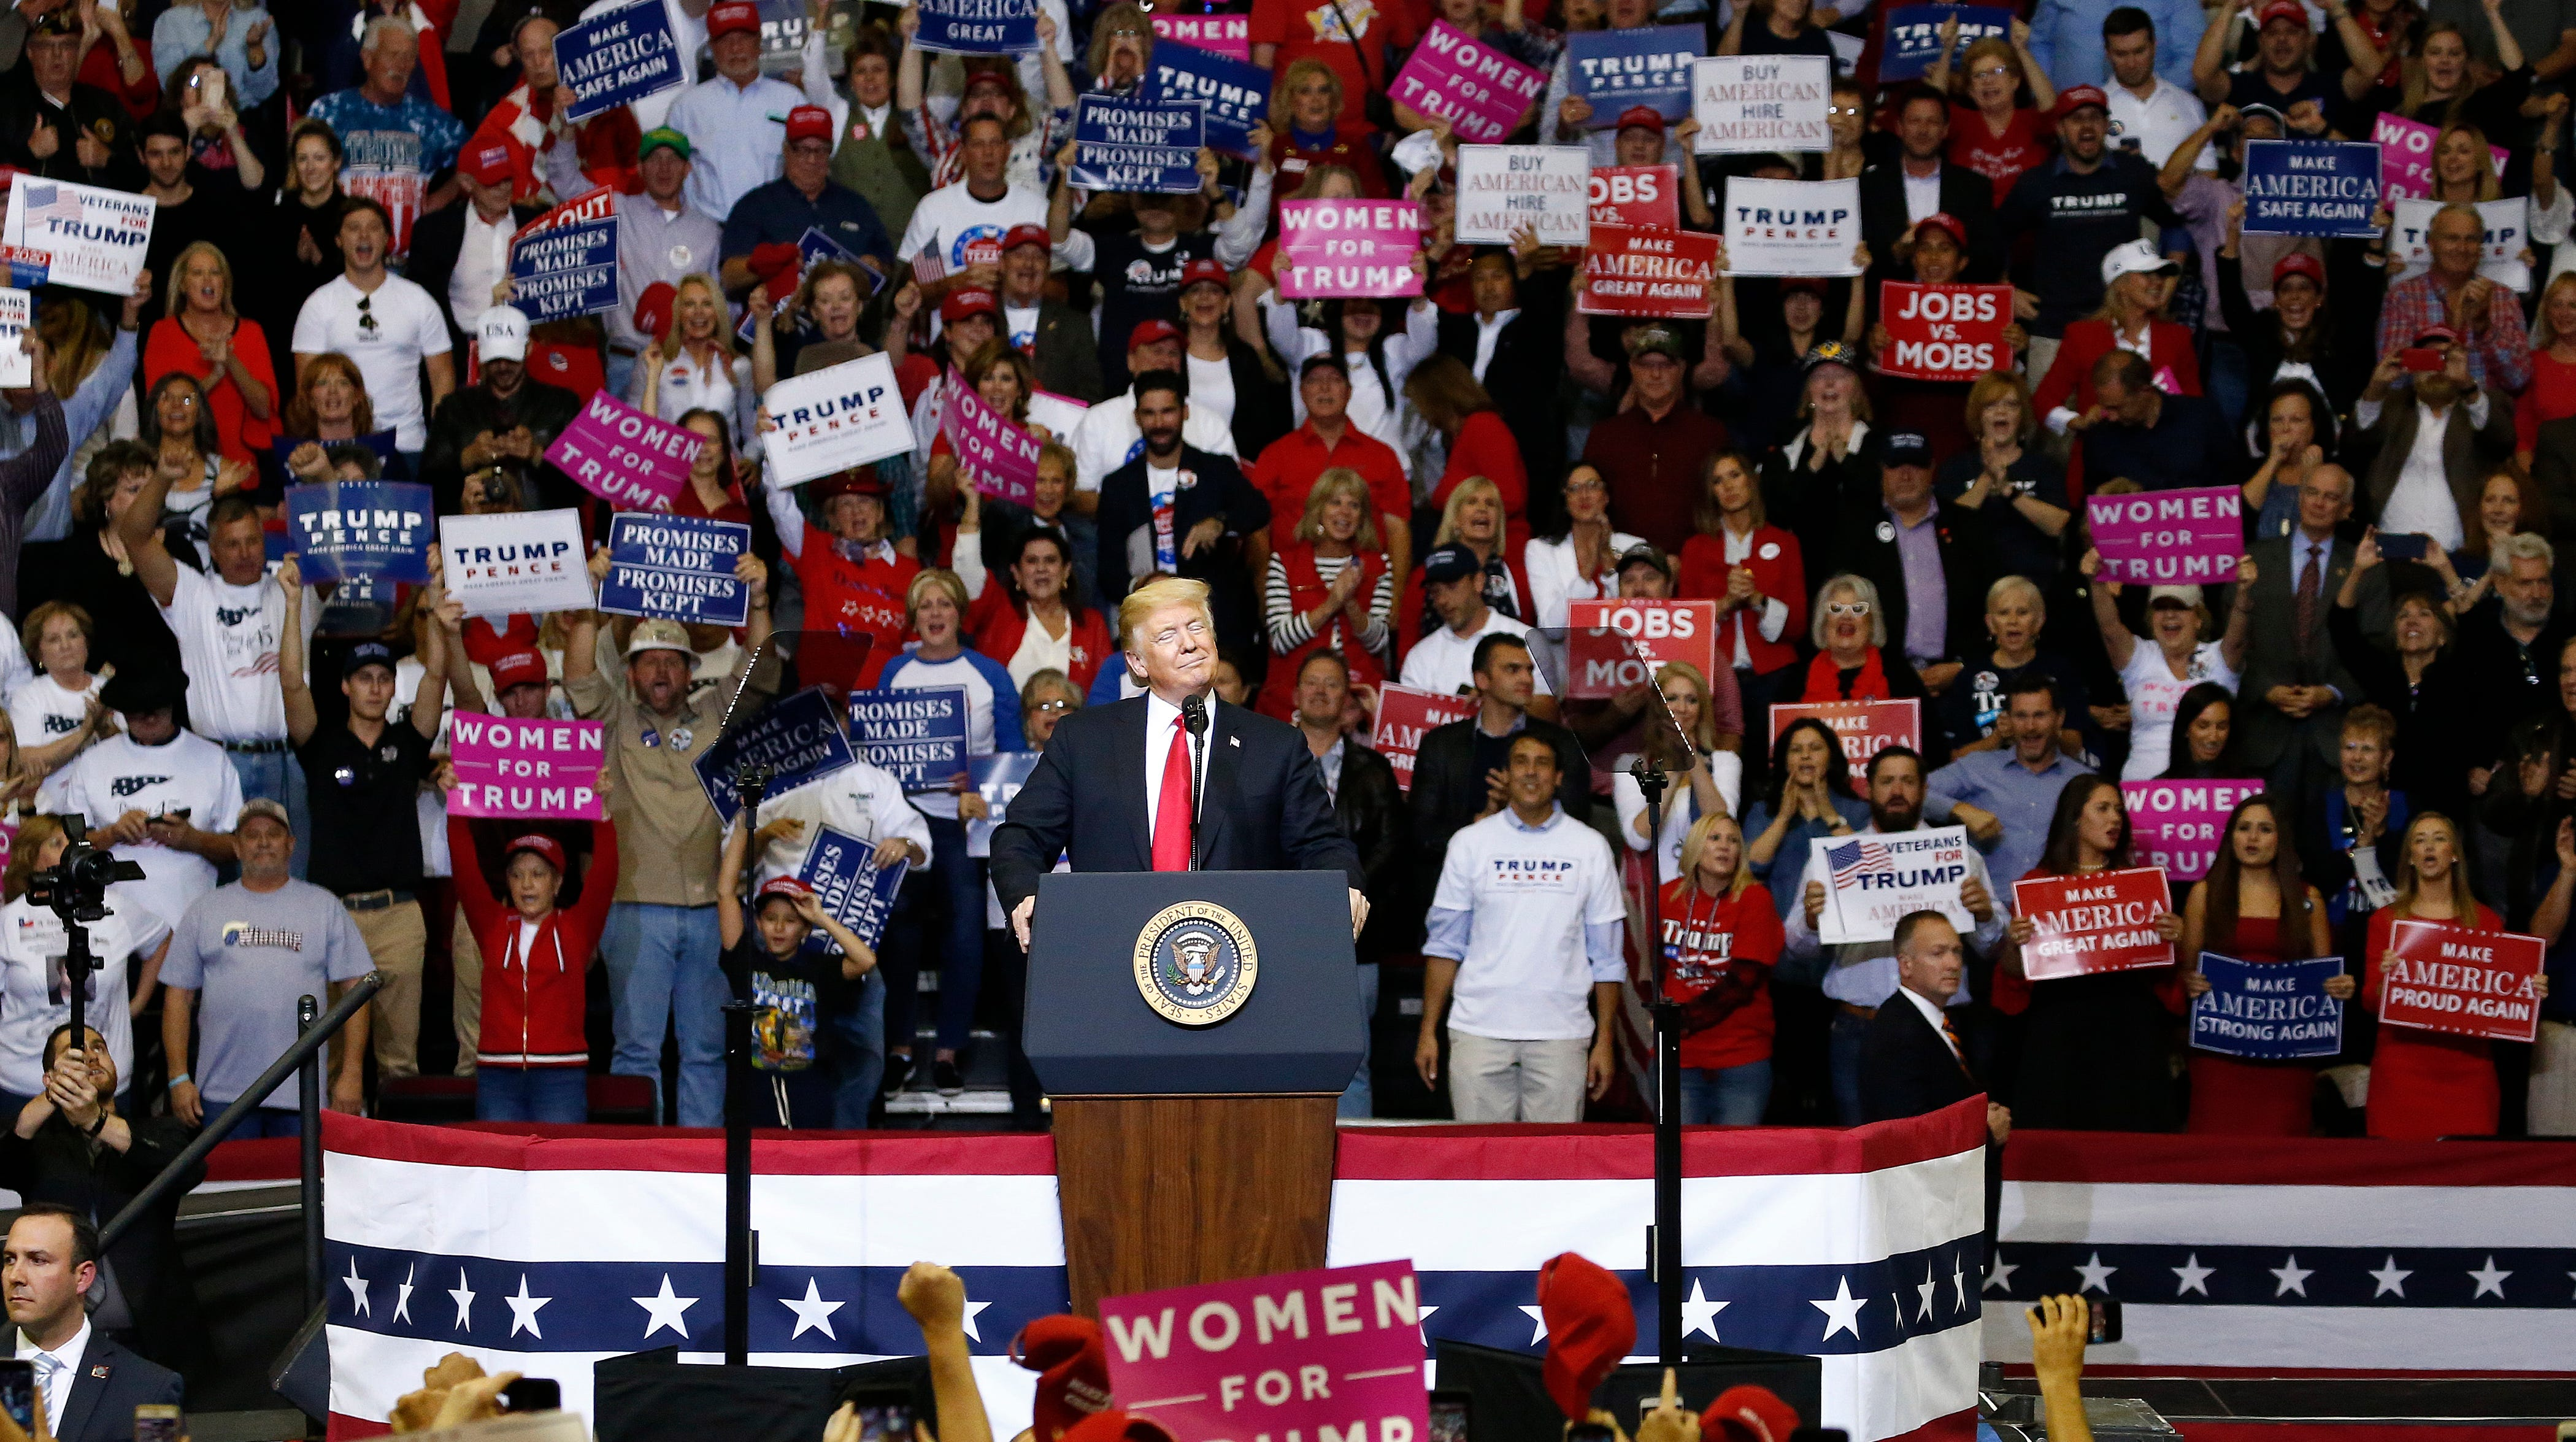 epa07112464 United States President Donald J. Trump speaks to supporters at a rally in Houston, Texas, USA, 22 October 2018.  EPA-EFE/LARRY W. SMITH ORG XMIT: LWS129